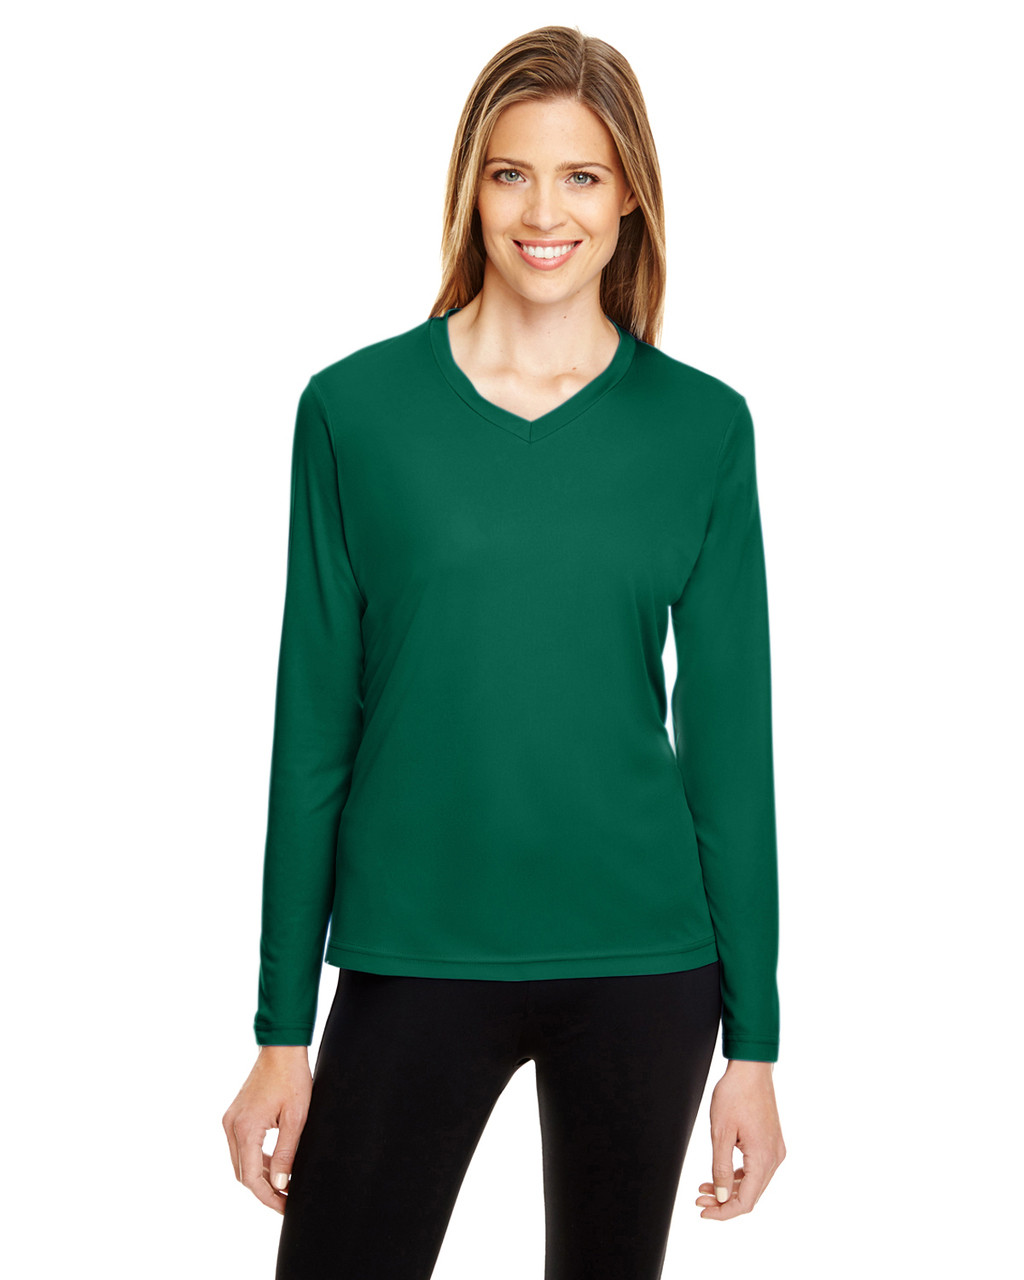 Sport Forest - TT11WL Team 365 Ladies' Zone Performance Long-Sleeve T-Shirt